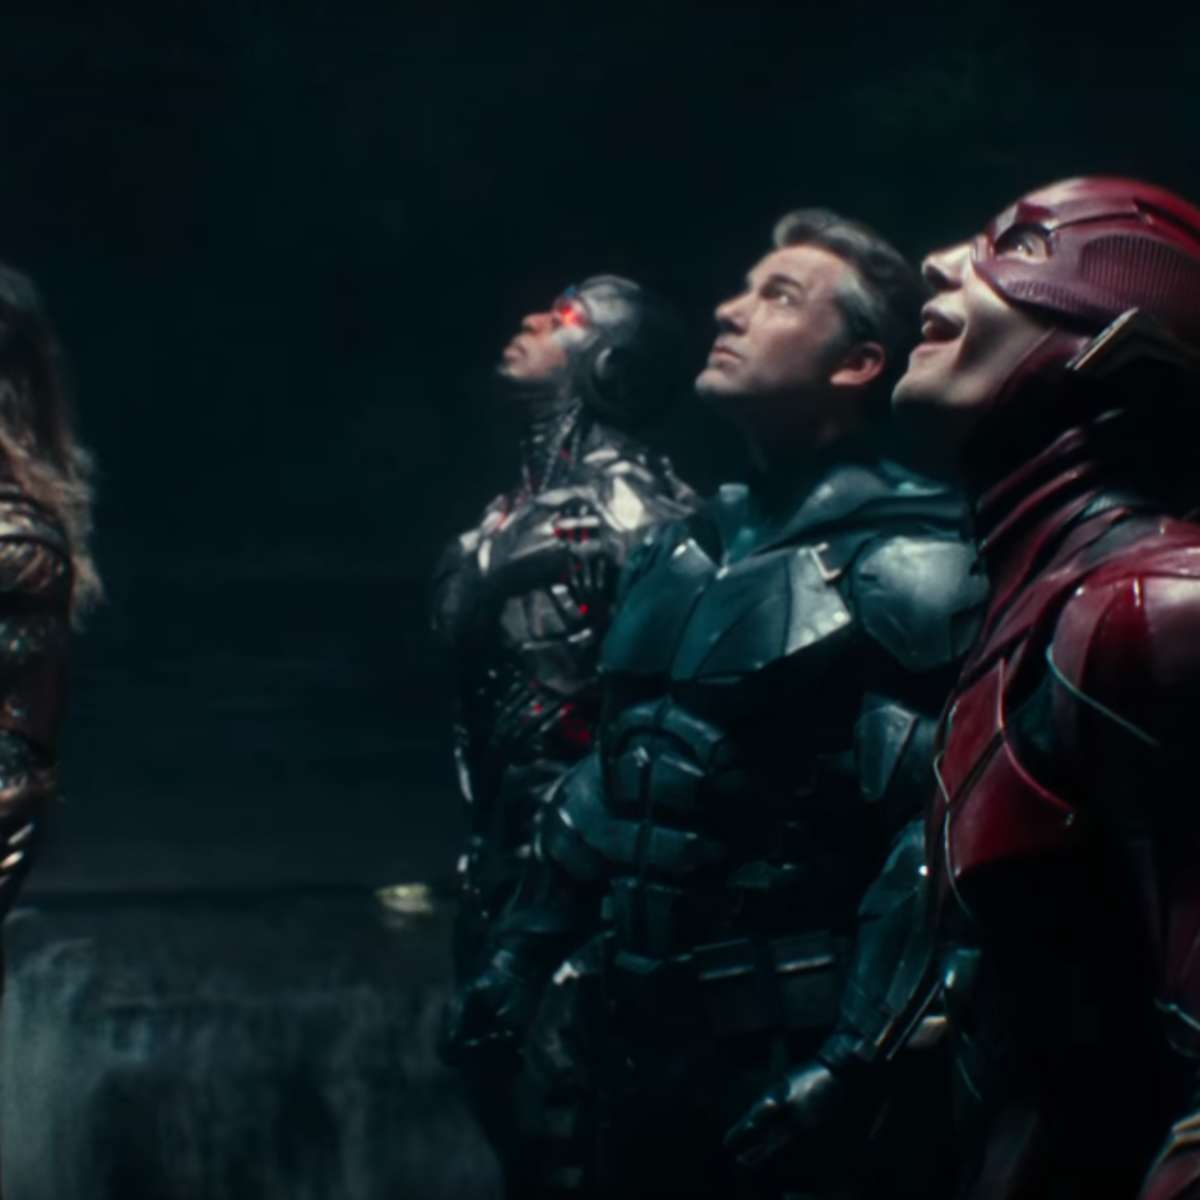 justice-league-promo-screengrab-syfywire.png